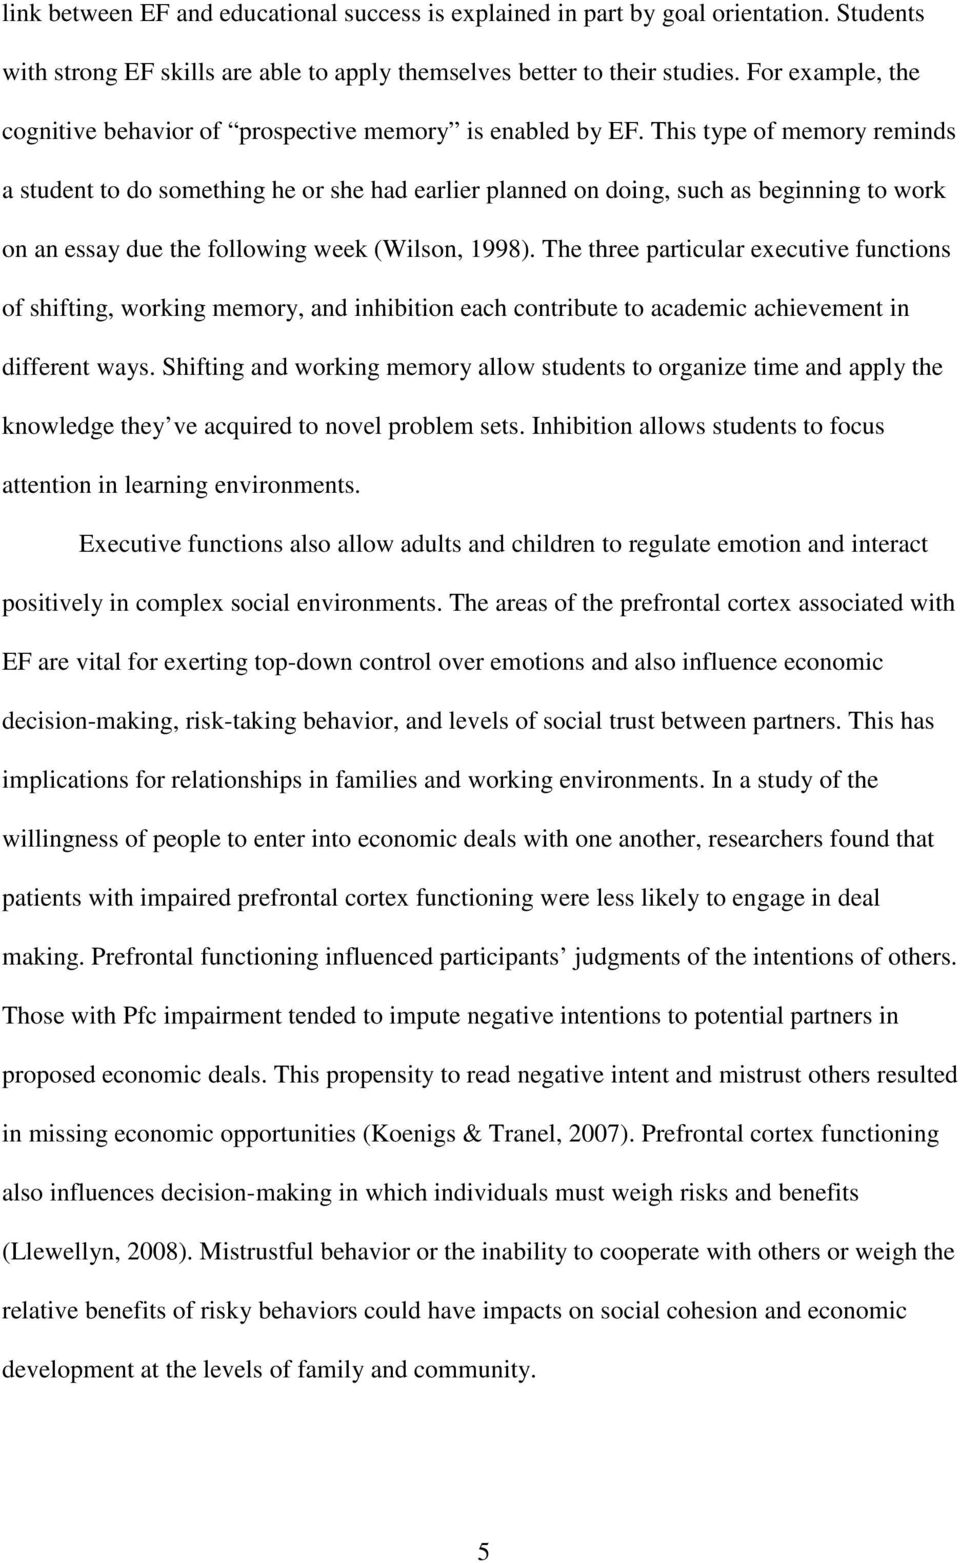 This type of memory reminds a student to do something he or she had earlier planned on doing, such as beginning to work on an essay due the following week (Wilson, 1998).